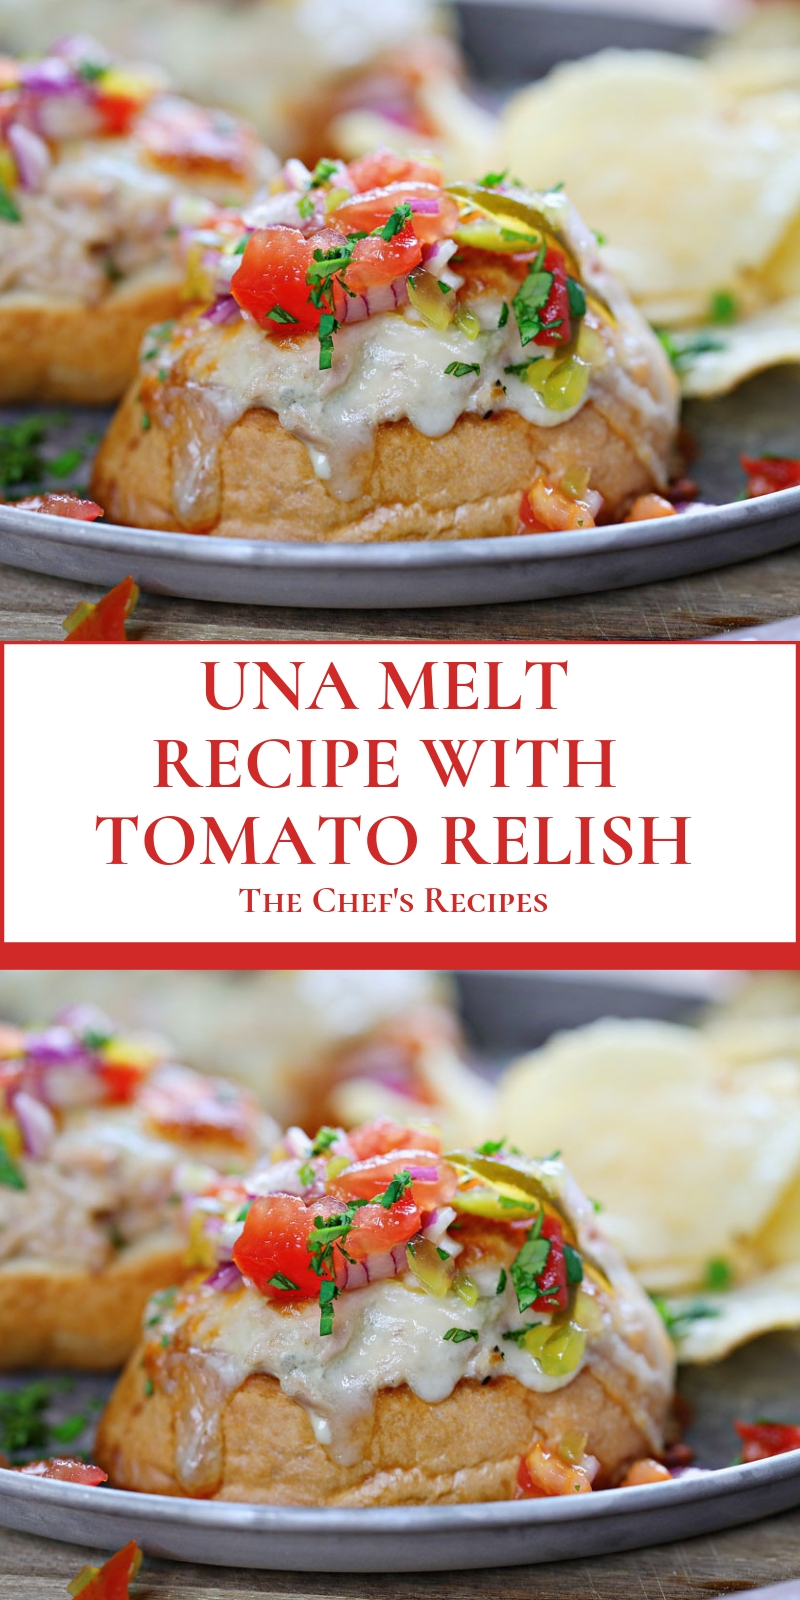 TUNA MELT RECIPE WITH TOMATO RELISH